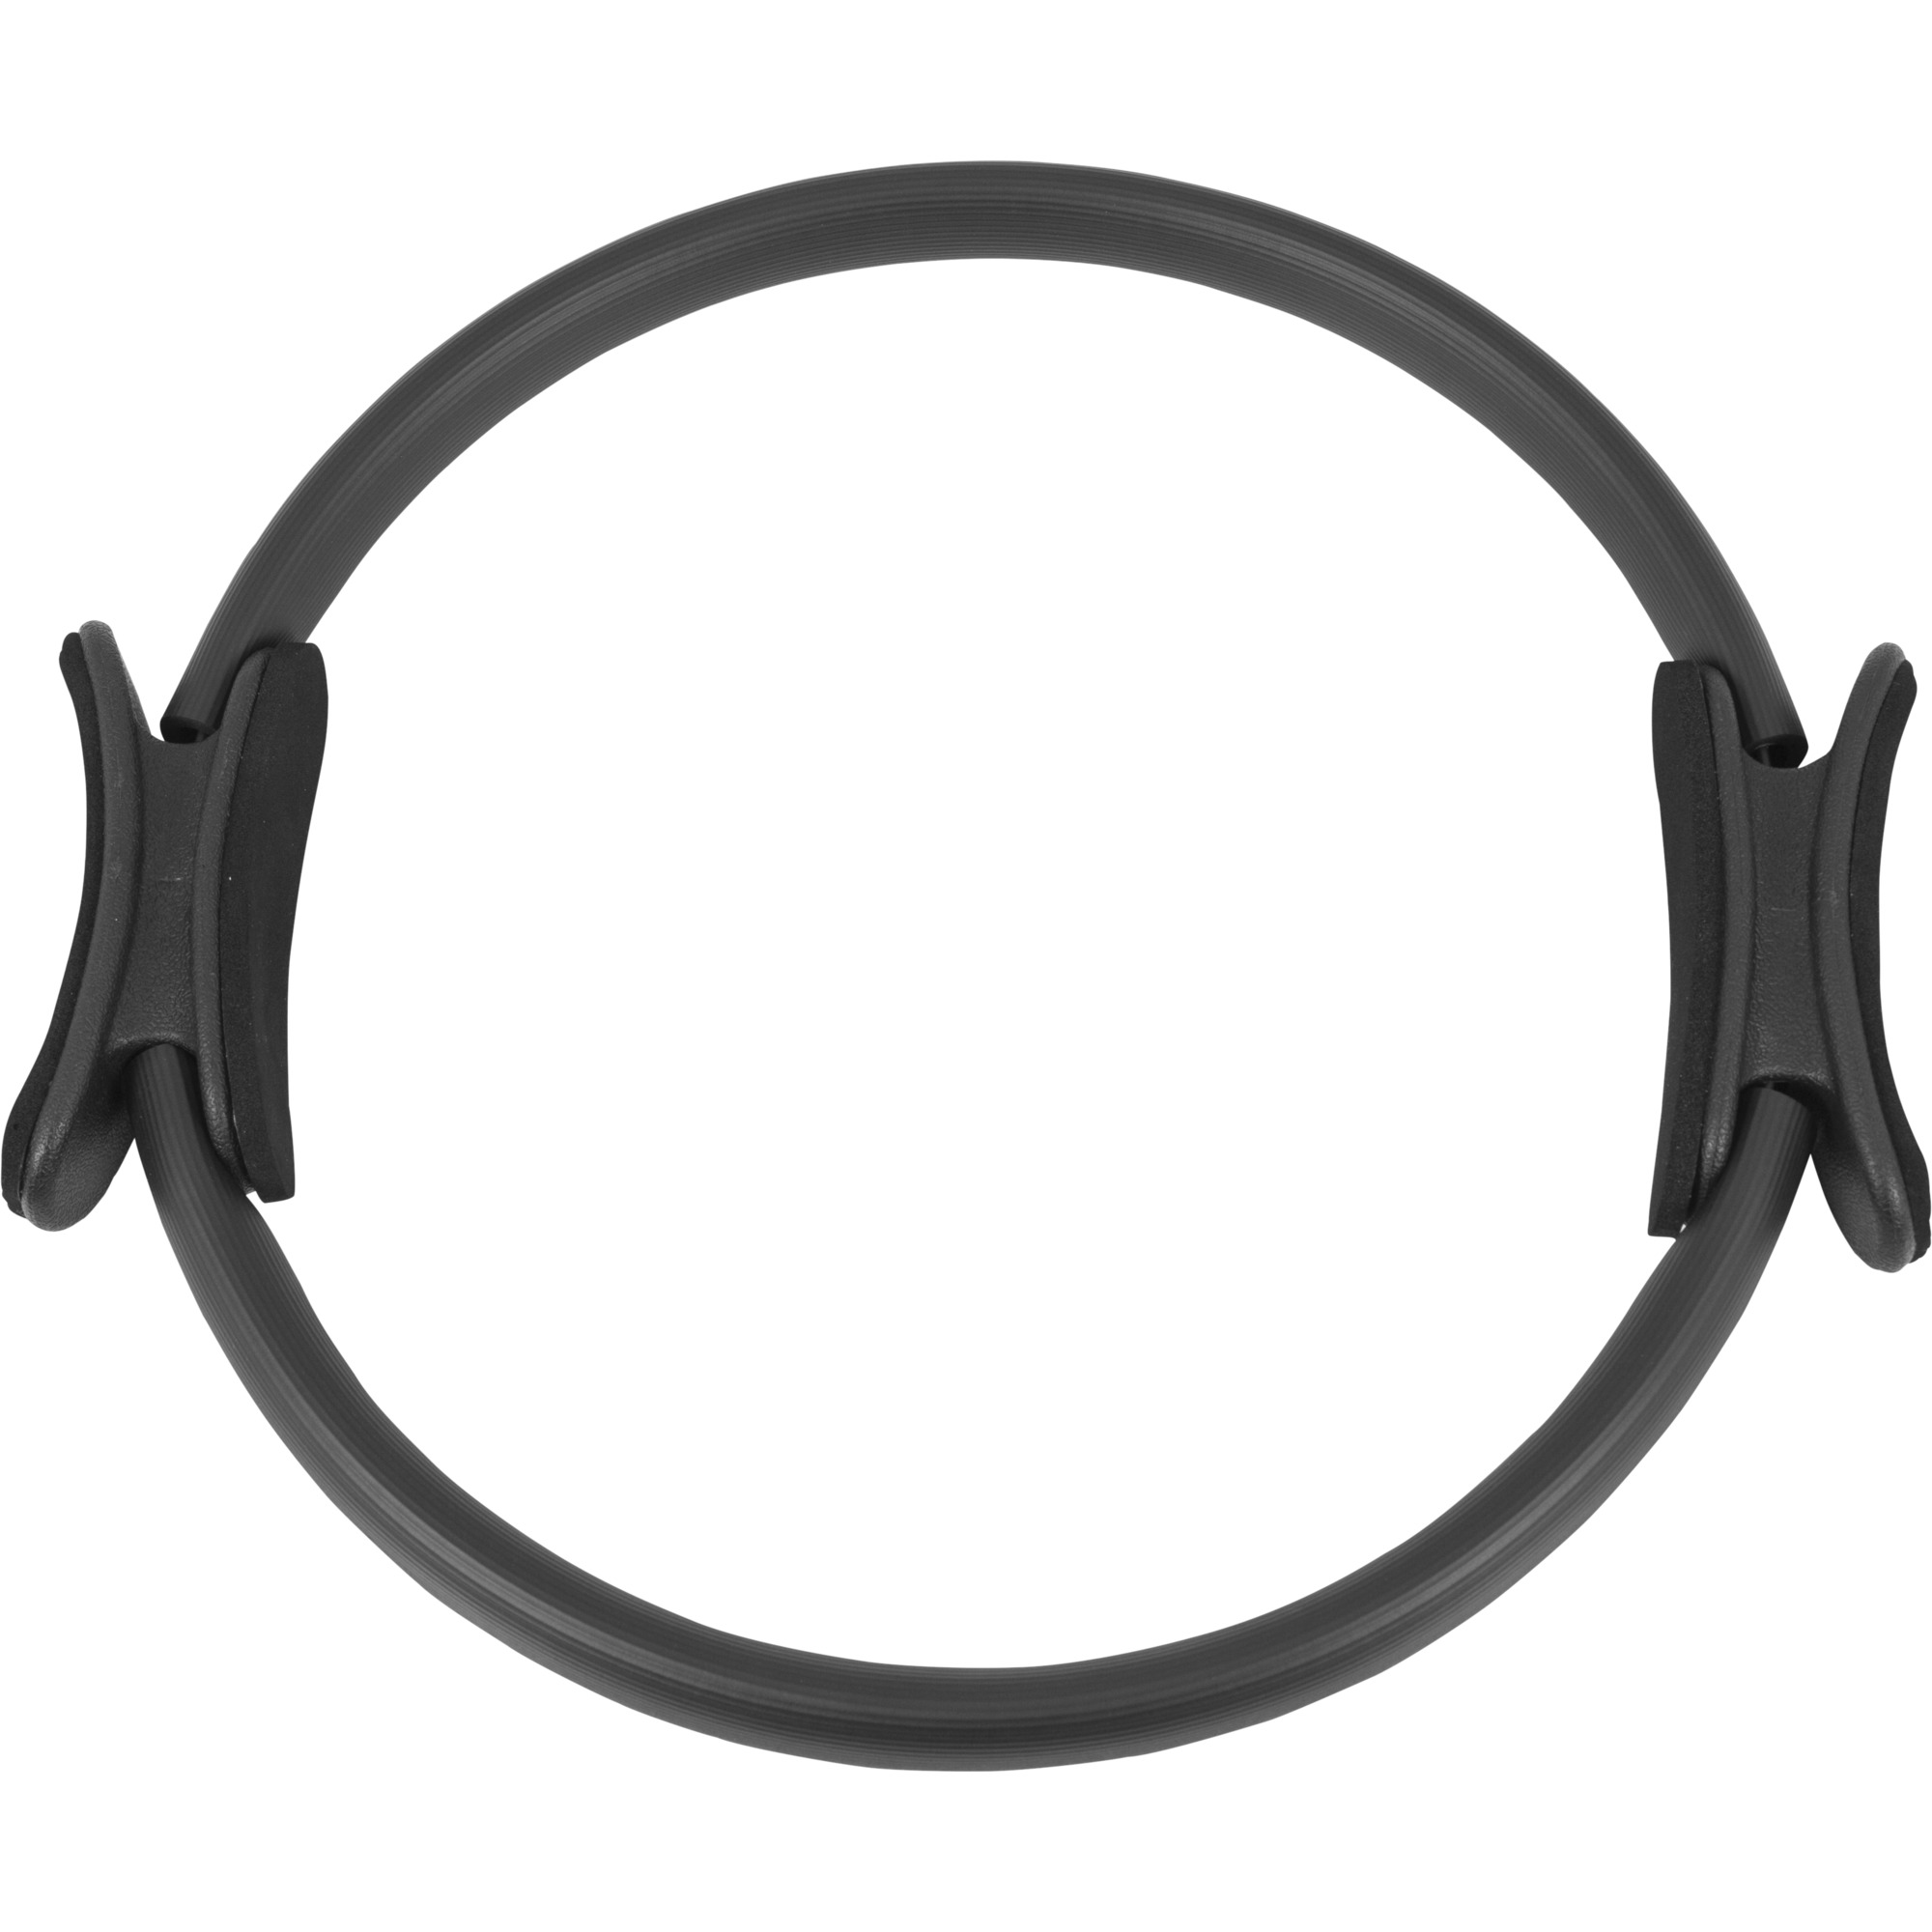 Pilates Ring 39 cm